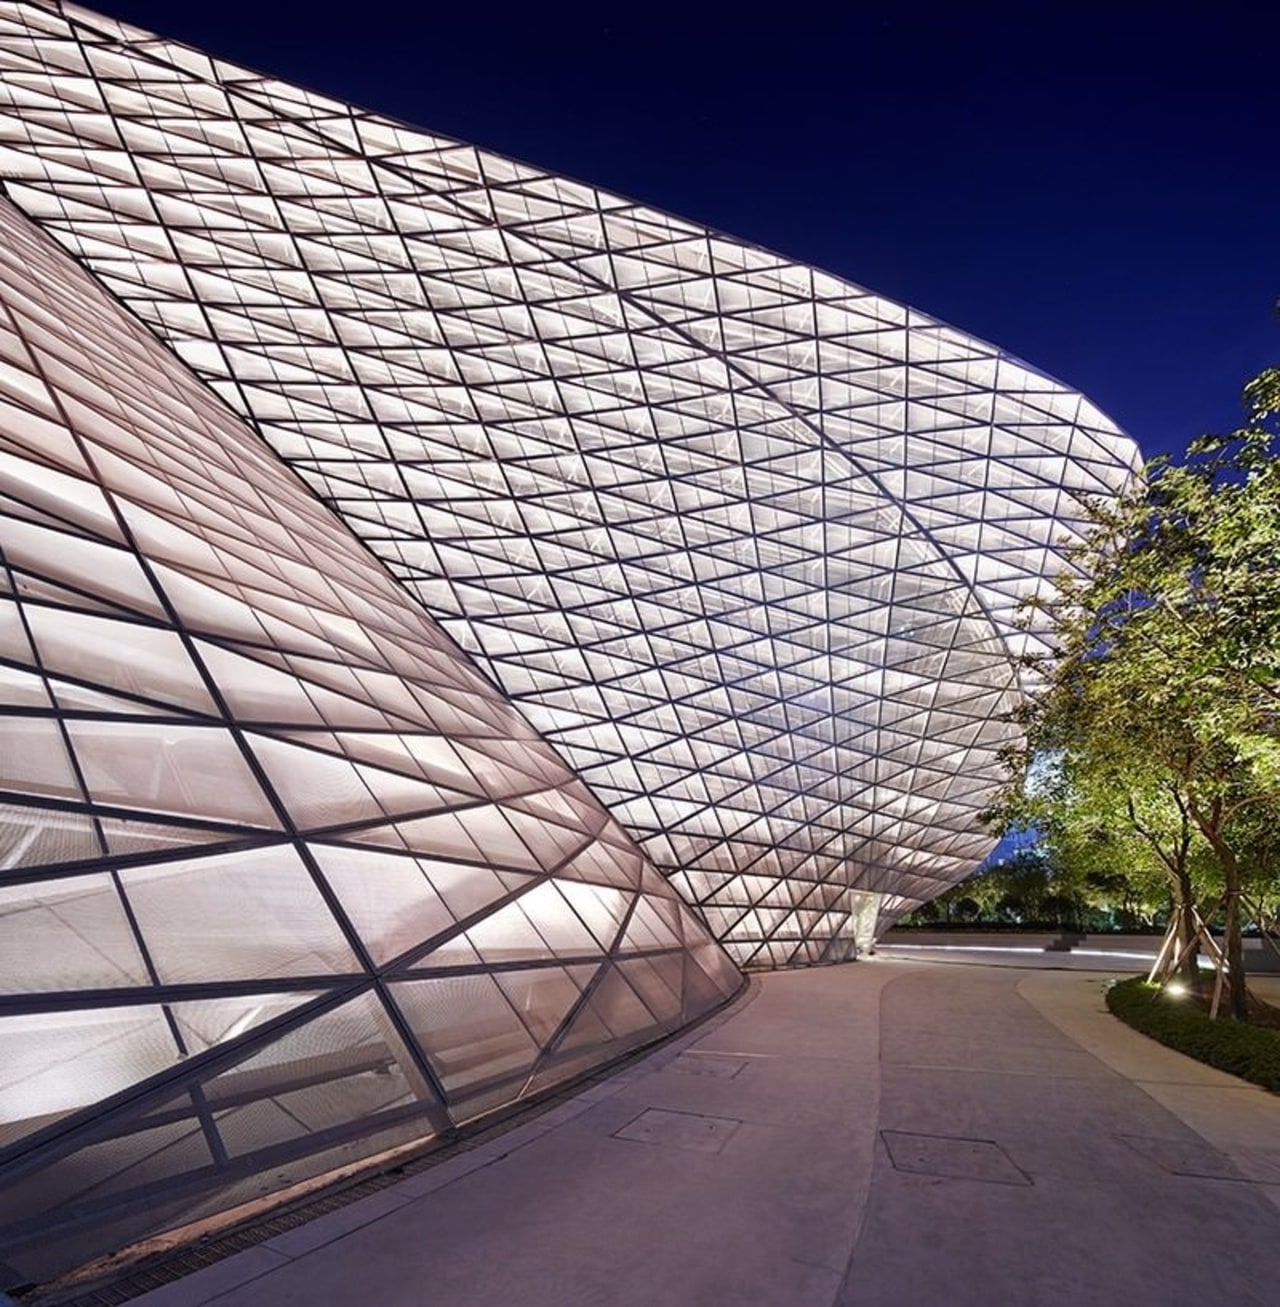 This part of the structure hangs out over architecture, building, commercial building, condominium, corporate headquarters, daylighting, daytime, facade, headquarters, landmark, metropolitan area, residential area, roof, sky, structure, white